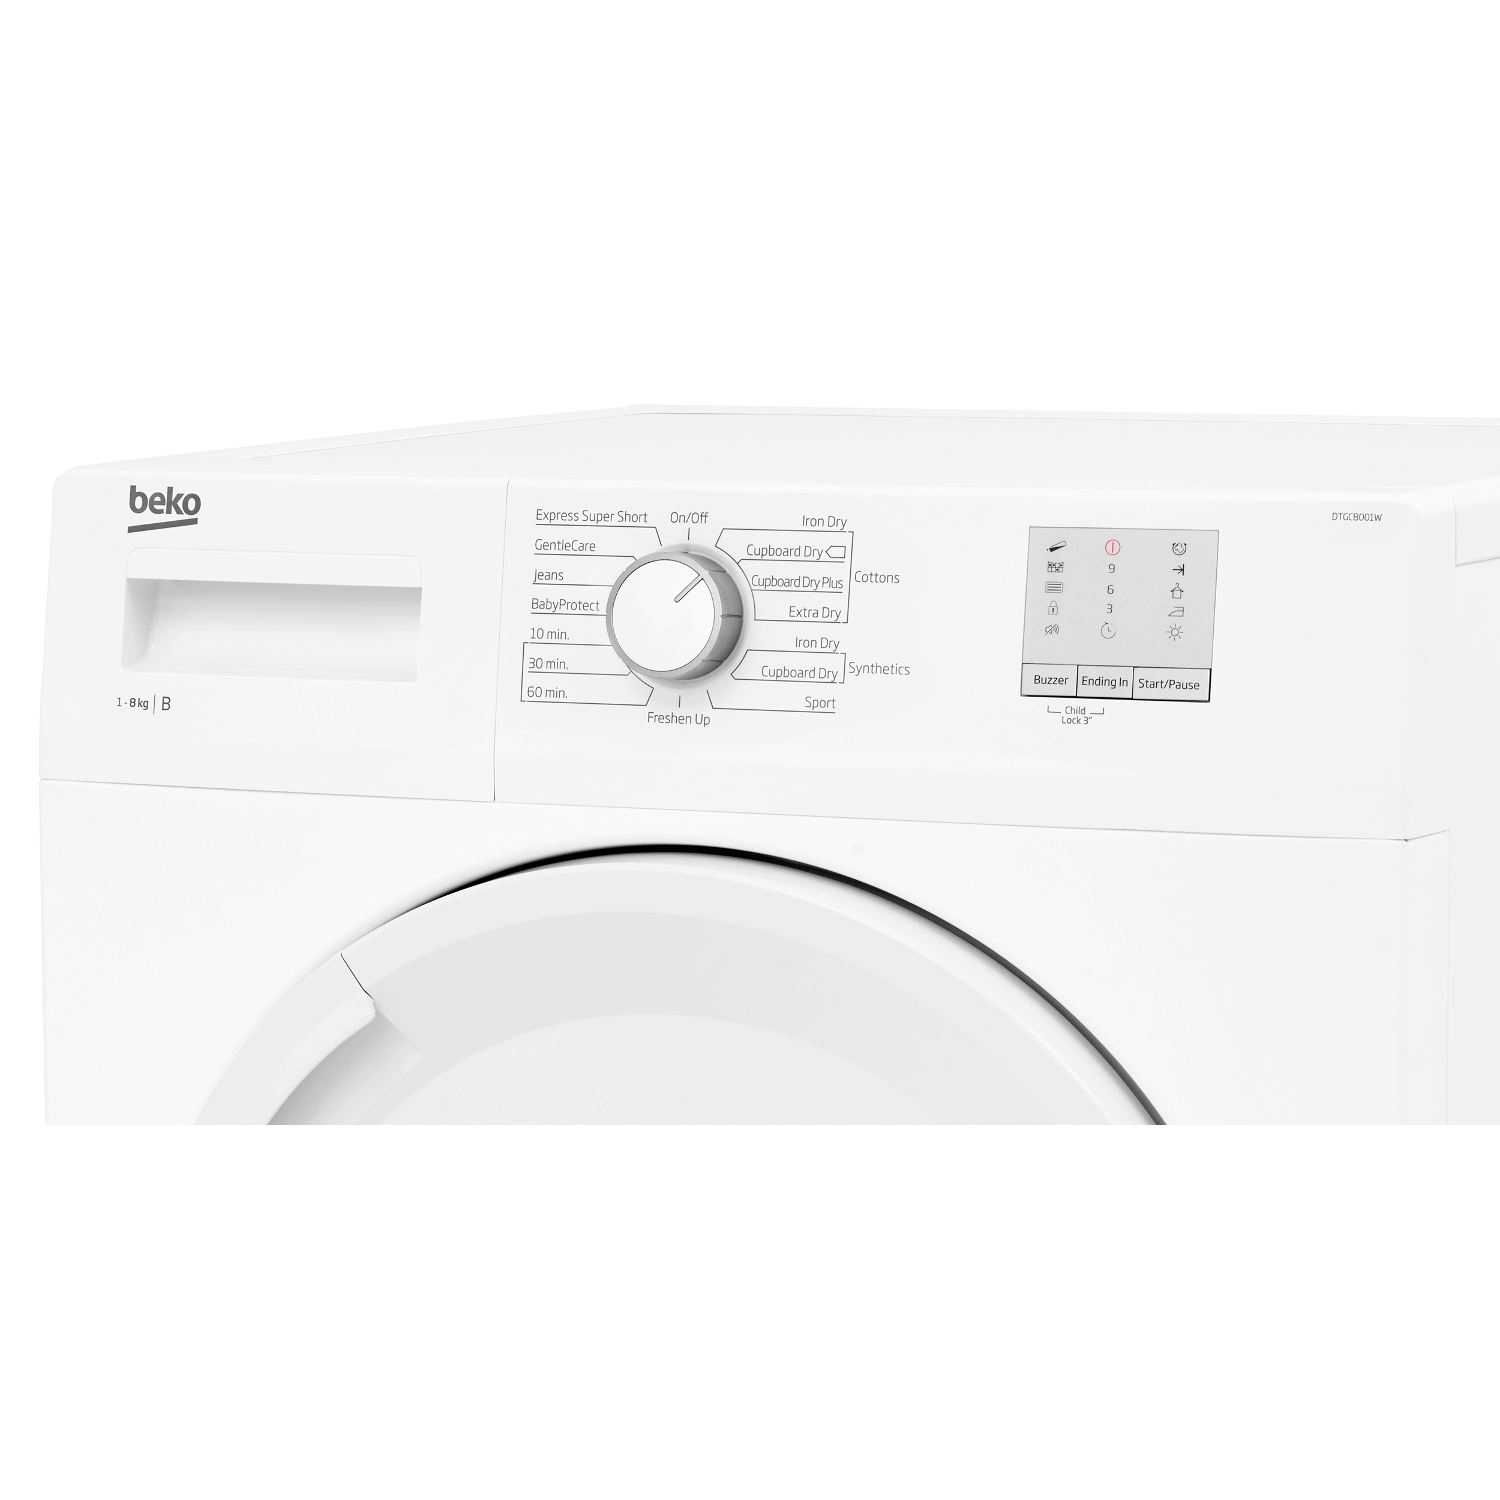 Beko 8kg Condenser Tumble Dryer - White - B Rated - 2